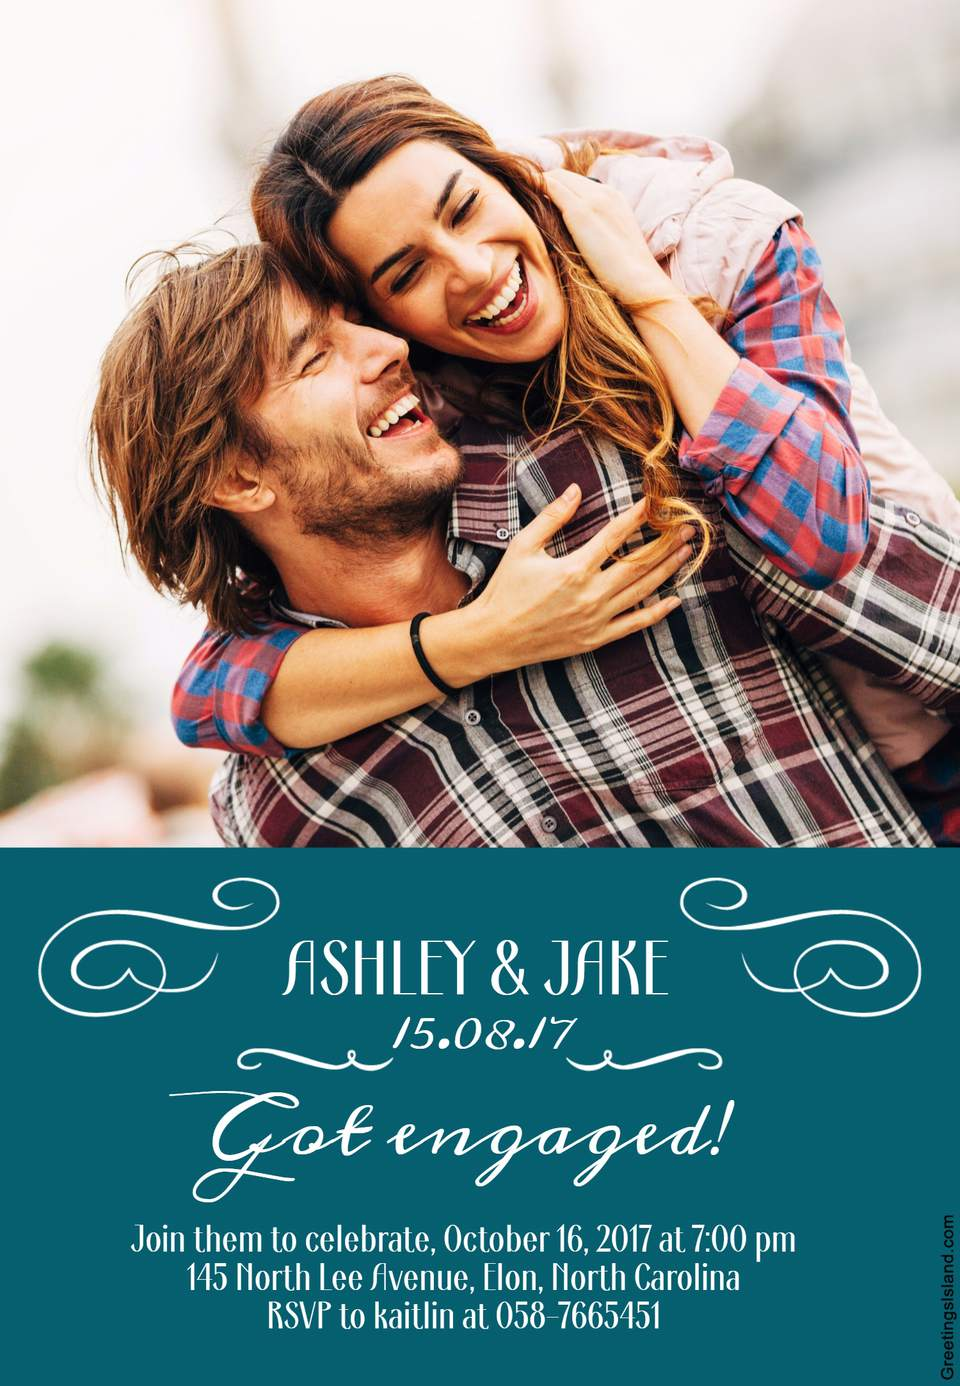 A happy couple in a photo engagement party invitation